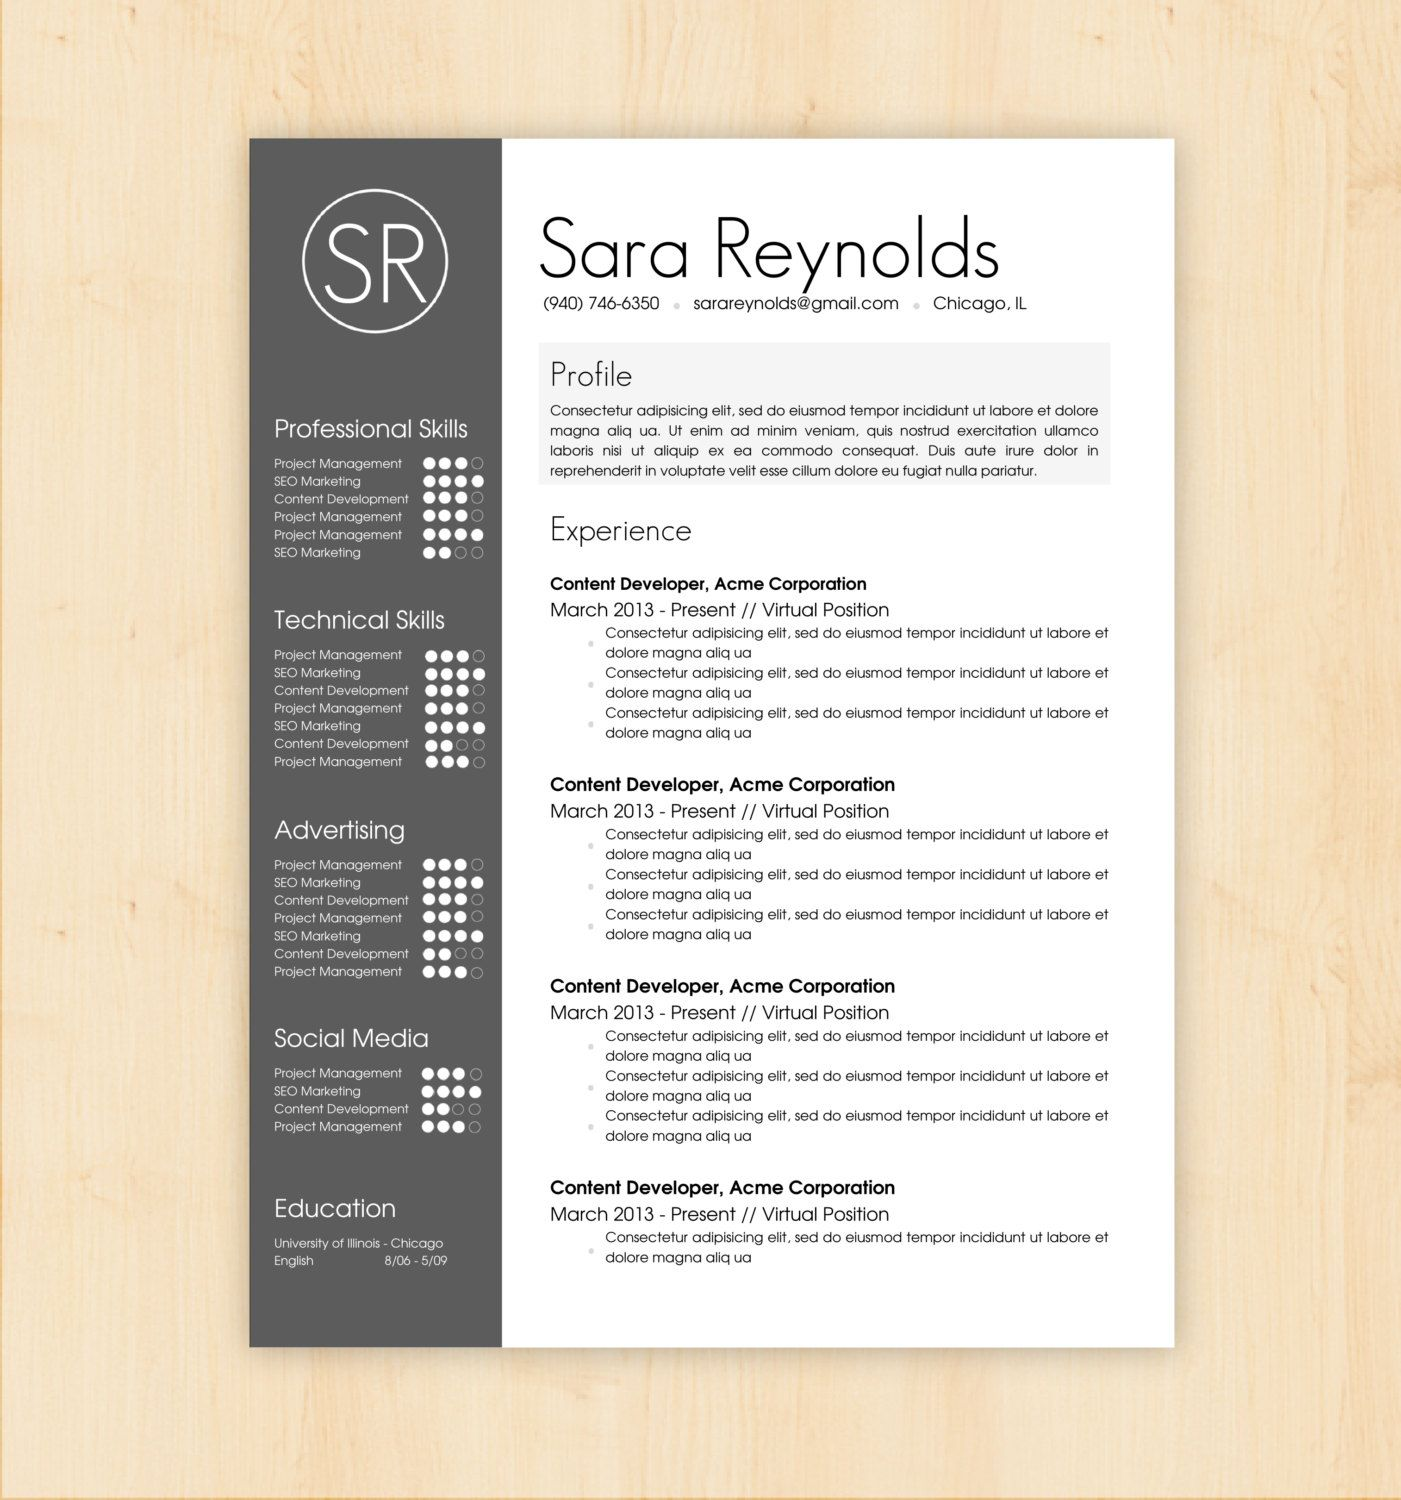 resume template cv template the sara reynolds resume design instant. Resume Example. Resume CV Cover Letter